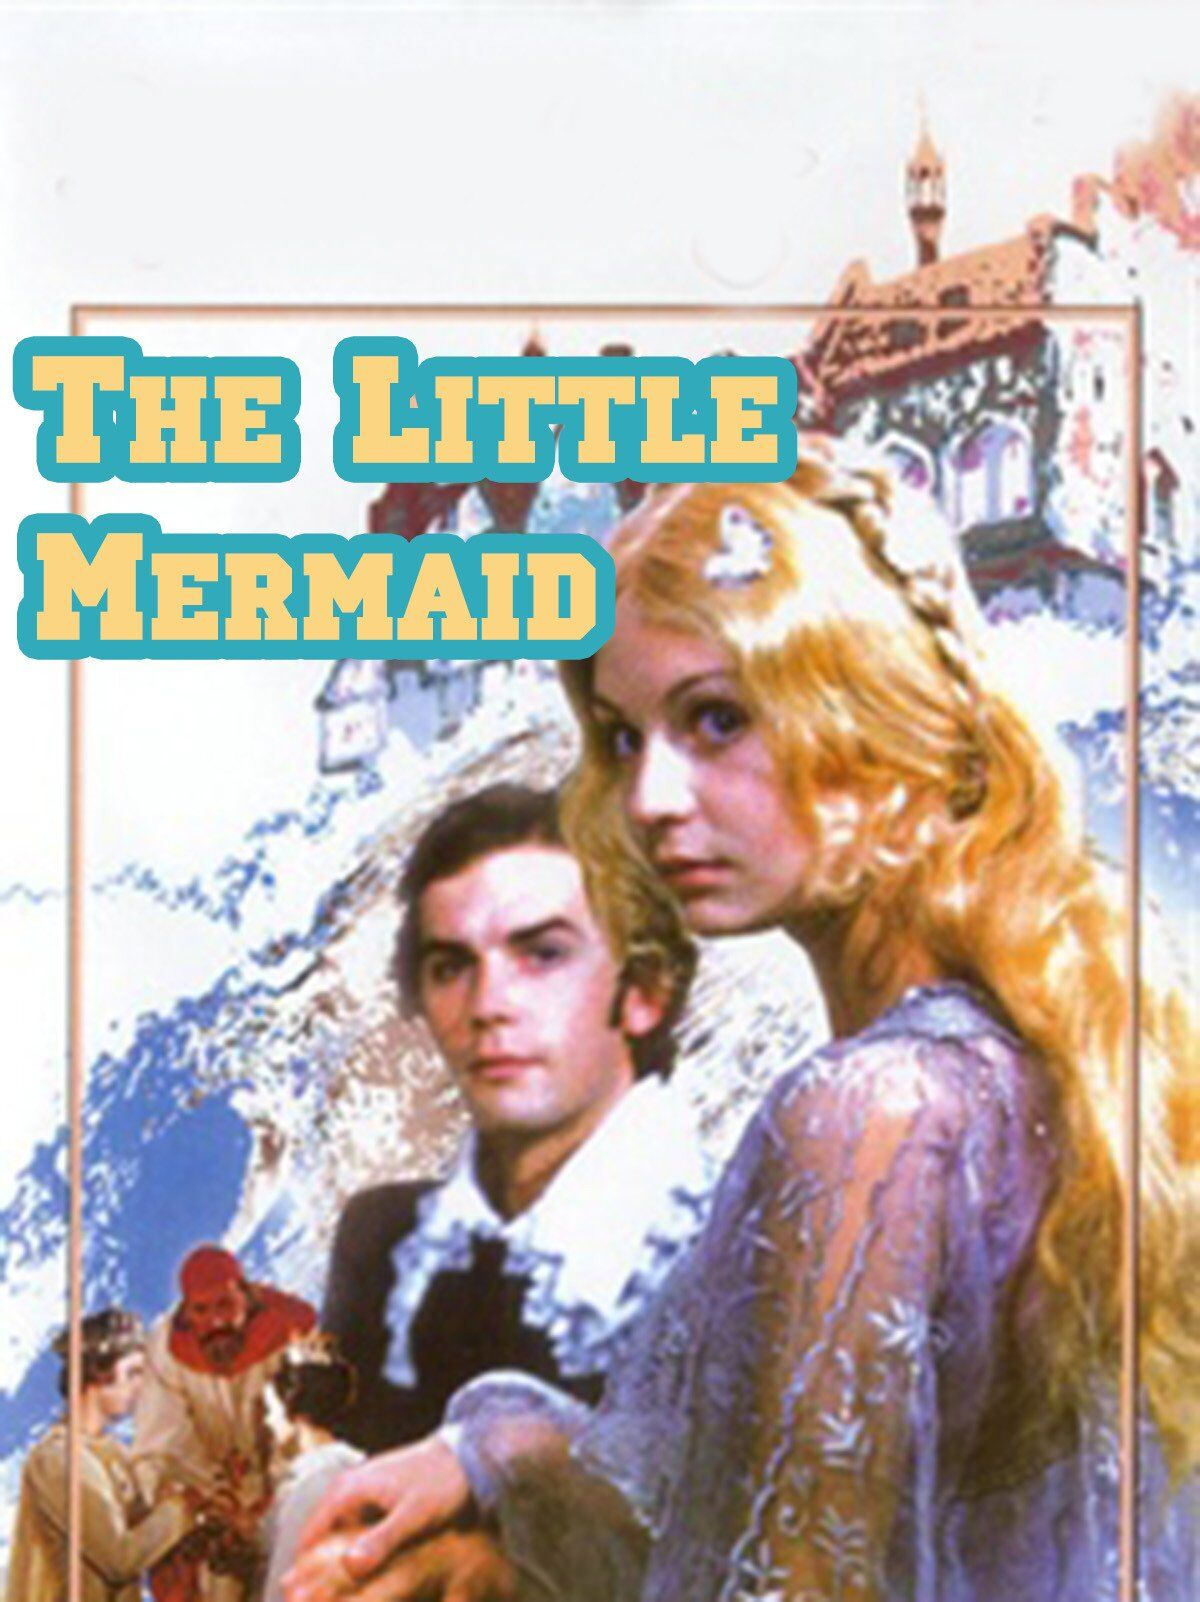 The Little Mermaid (1976)